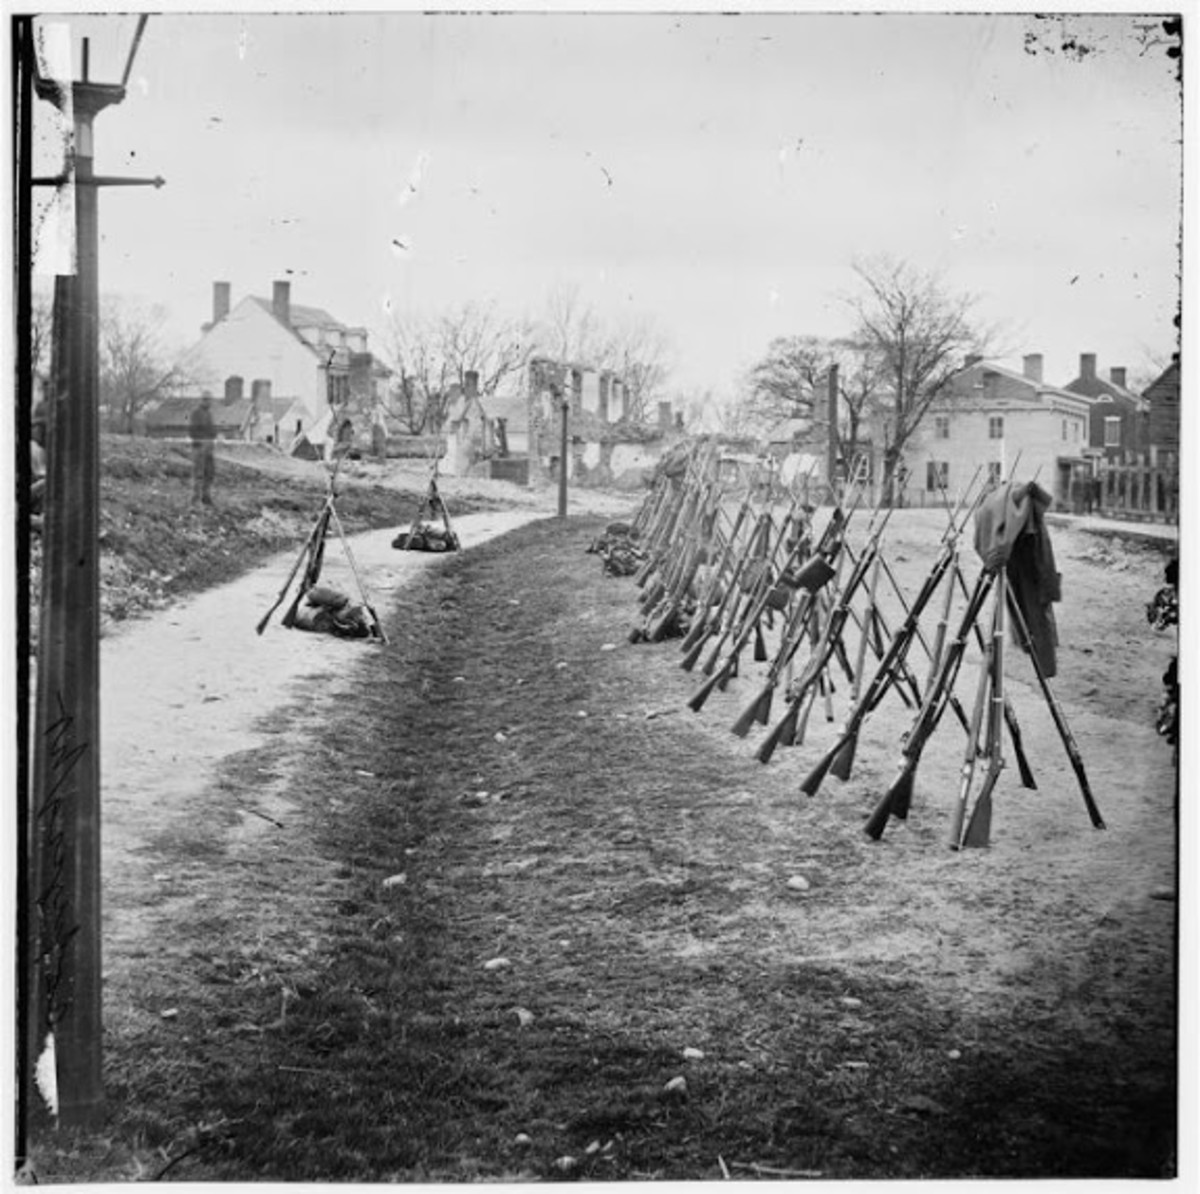 Stacks of muskets indicate a camp of infantry nearby